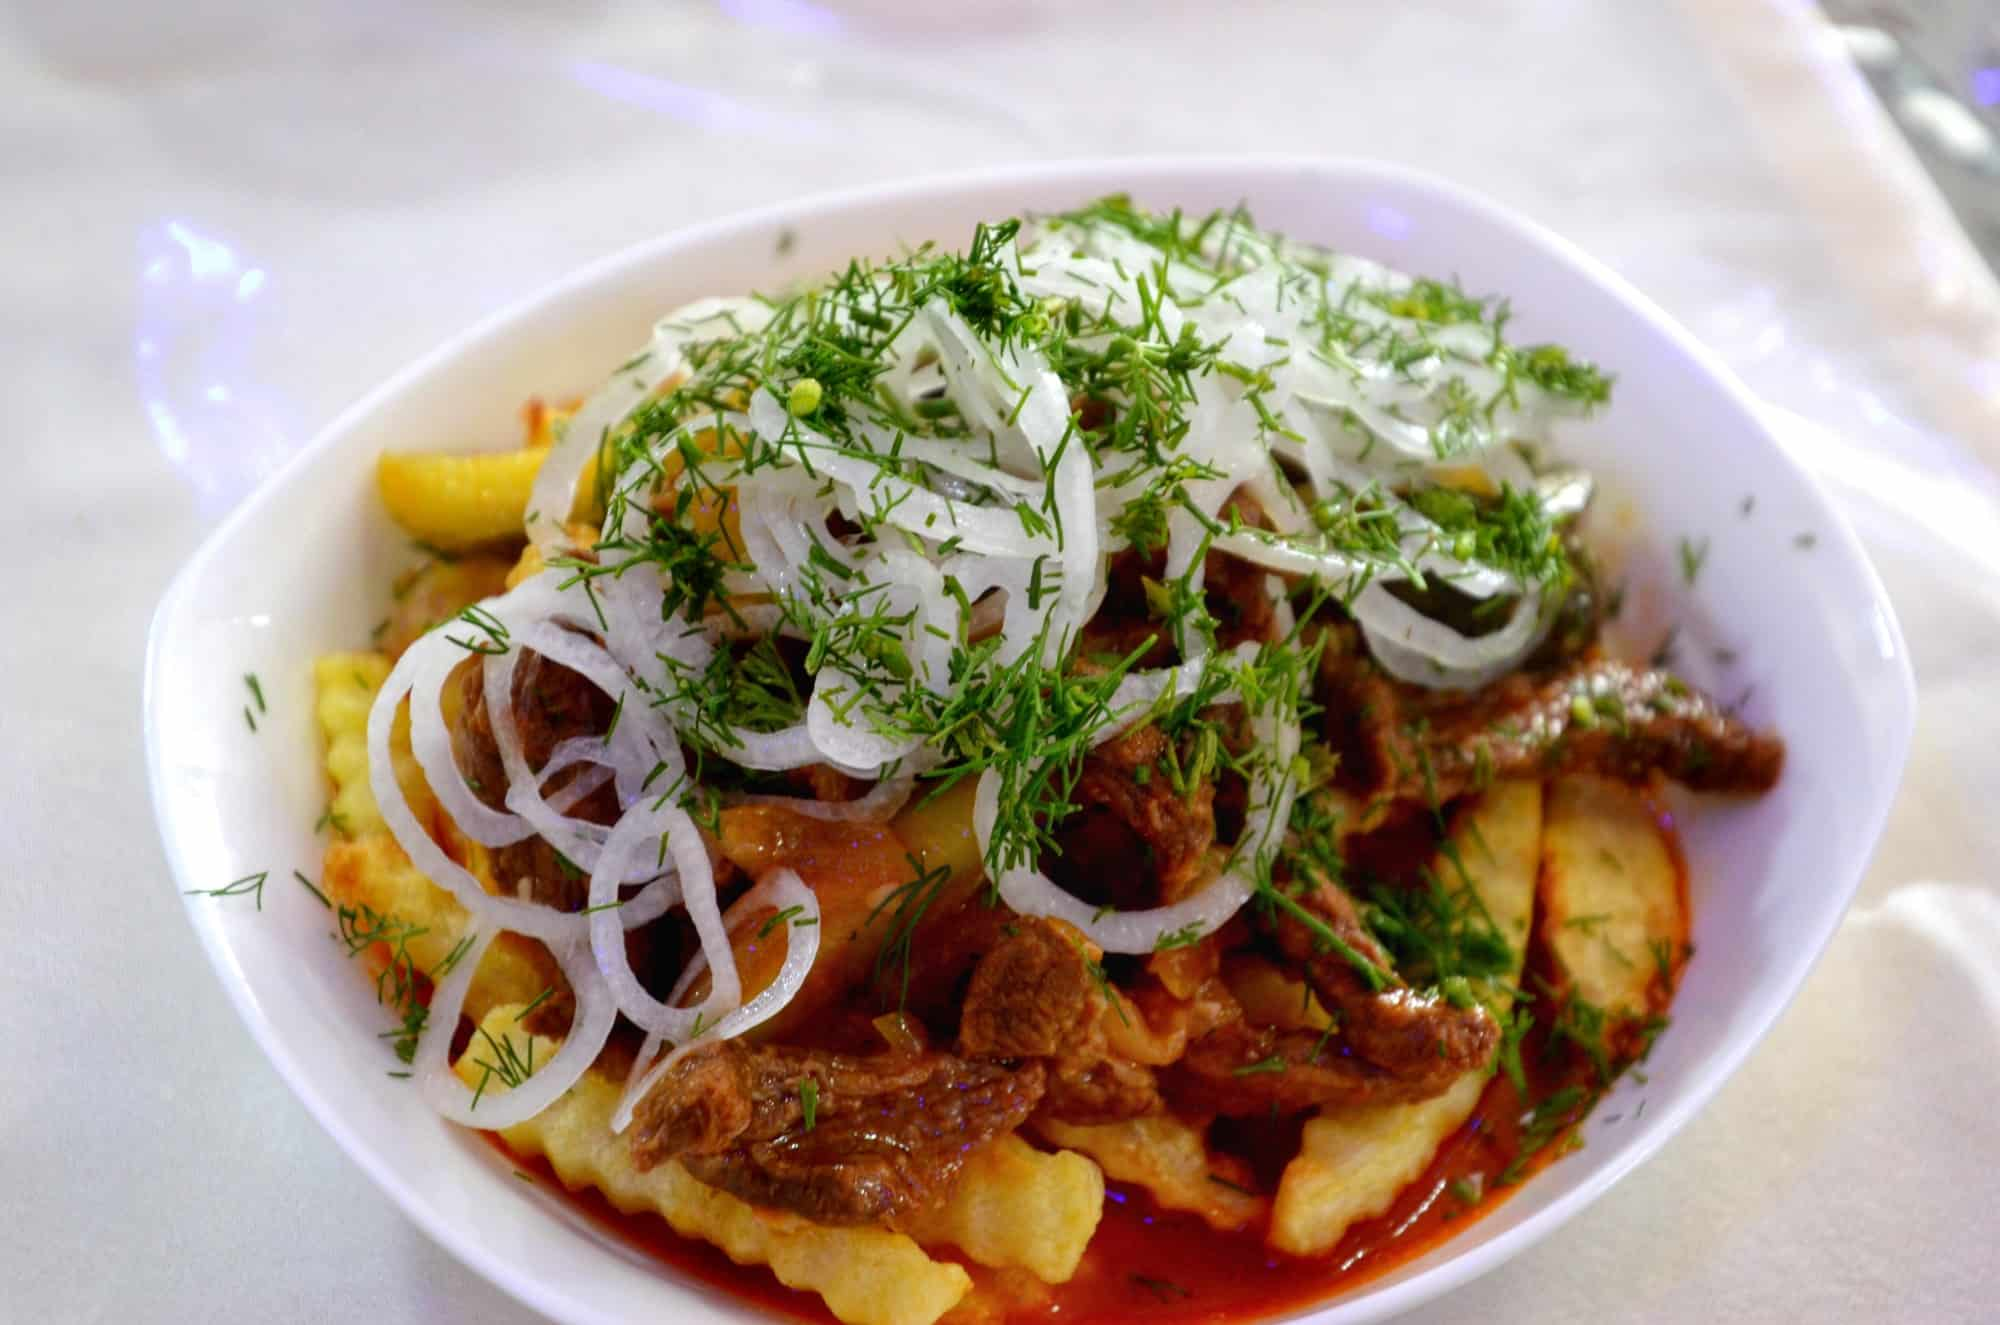 Best dishes at Karakol's restaurants